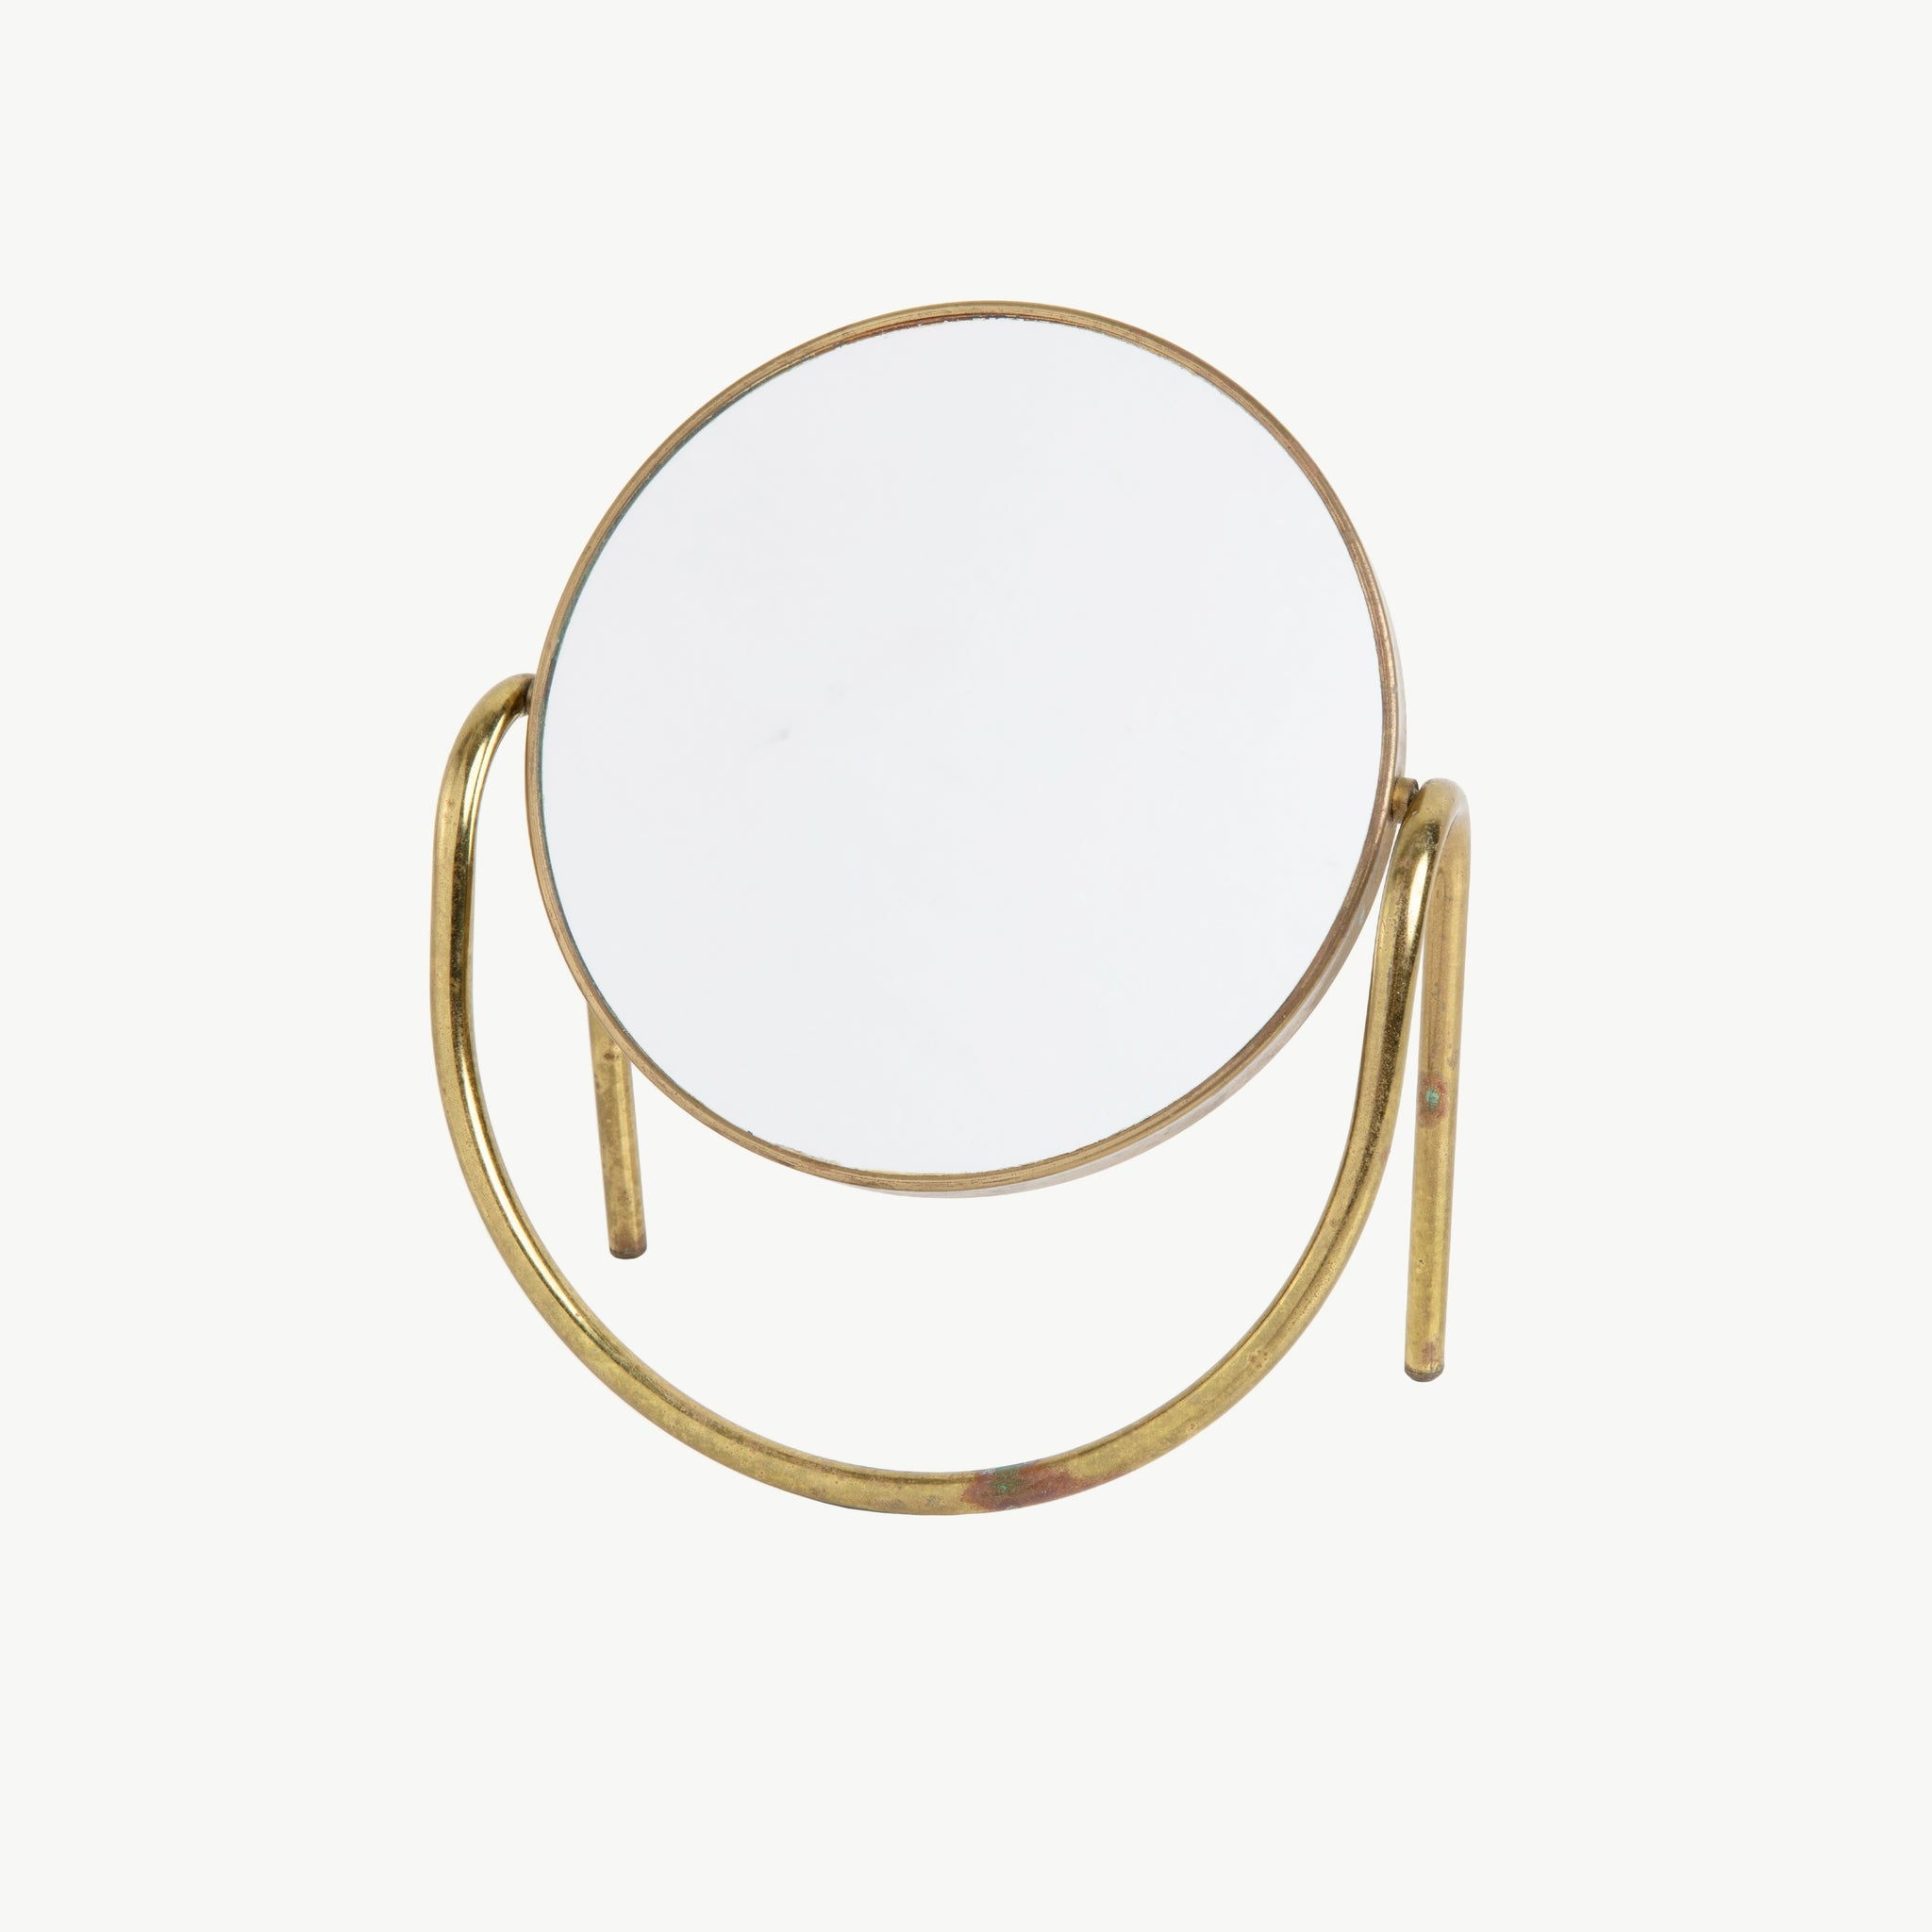 VINTAGE BRASS COSMETIC MIRROR